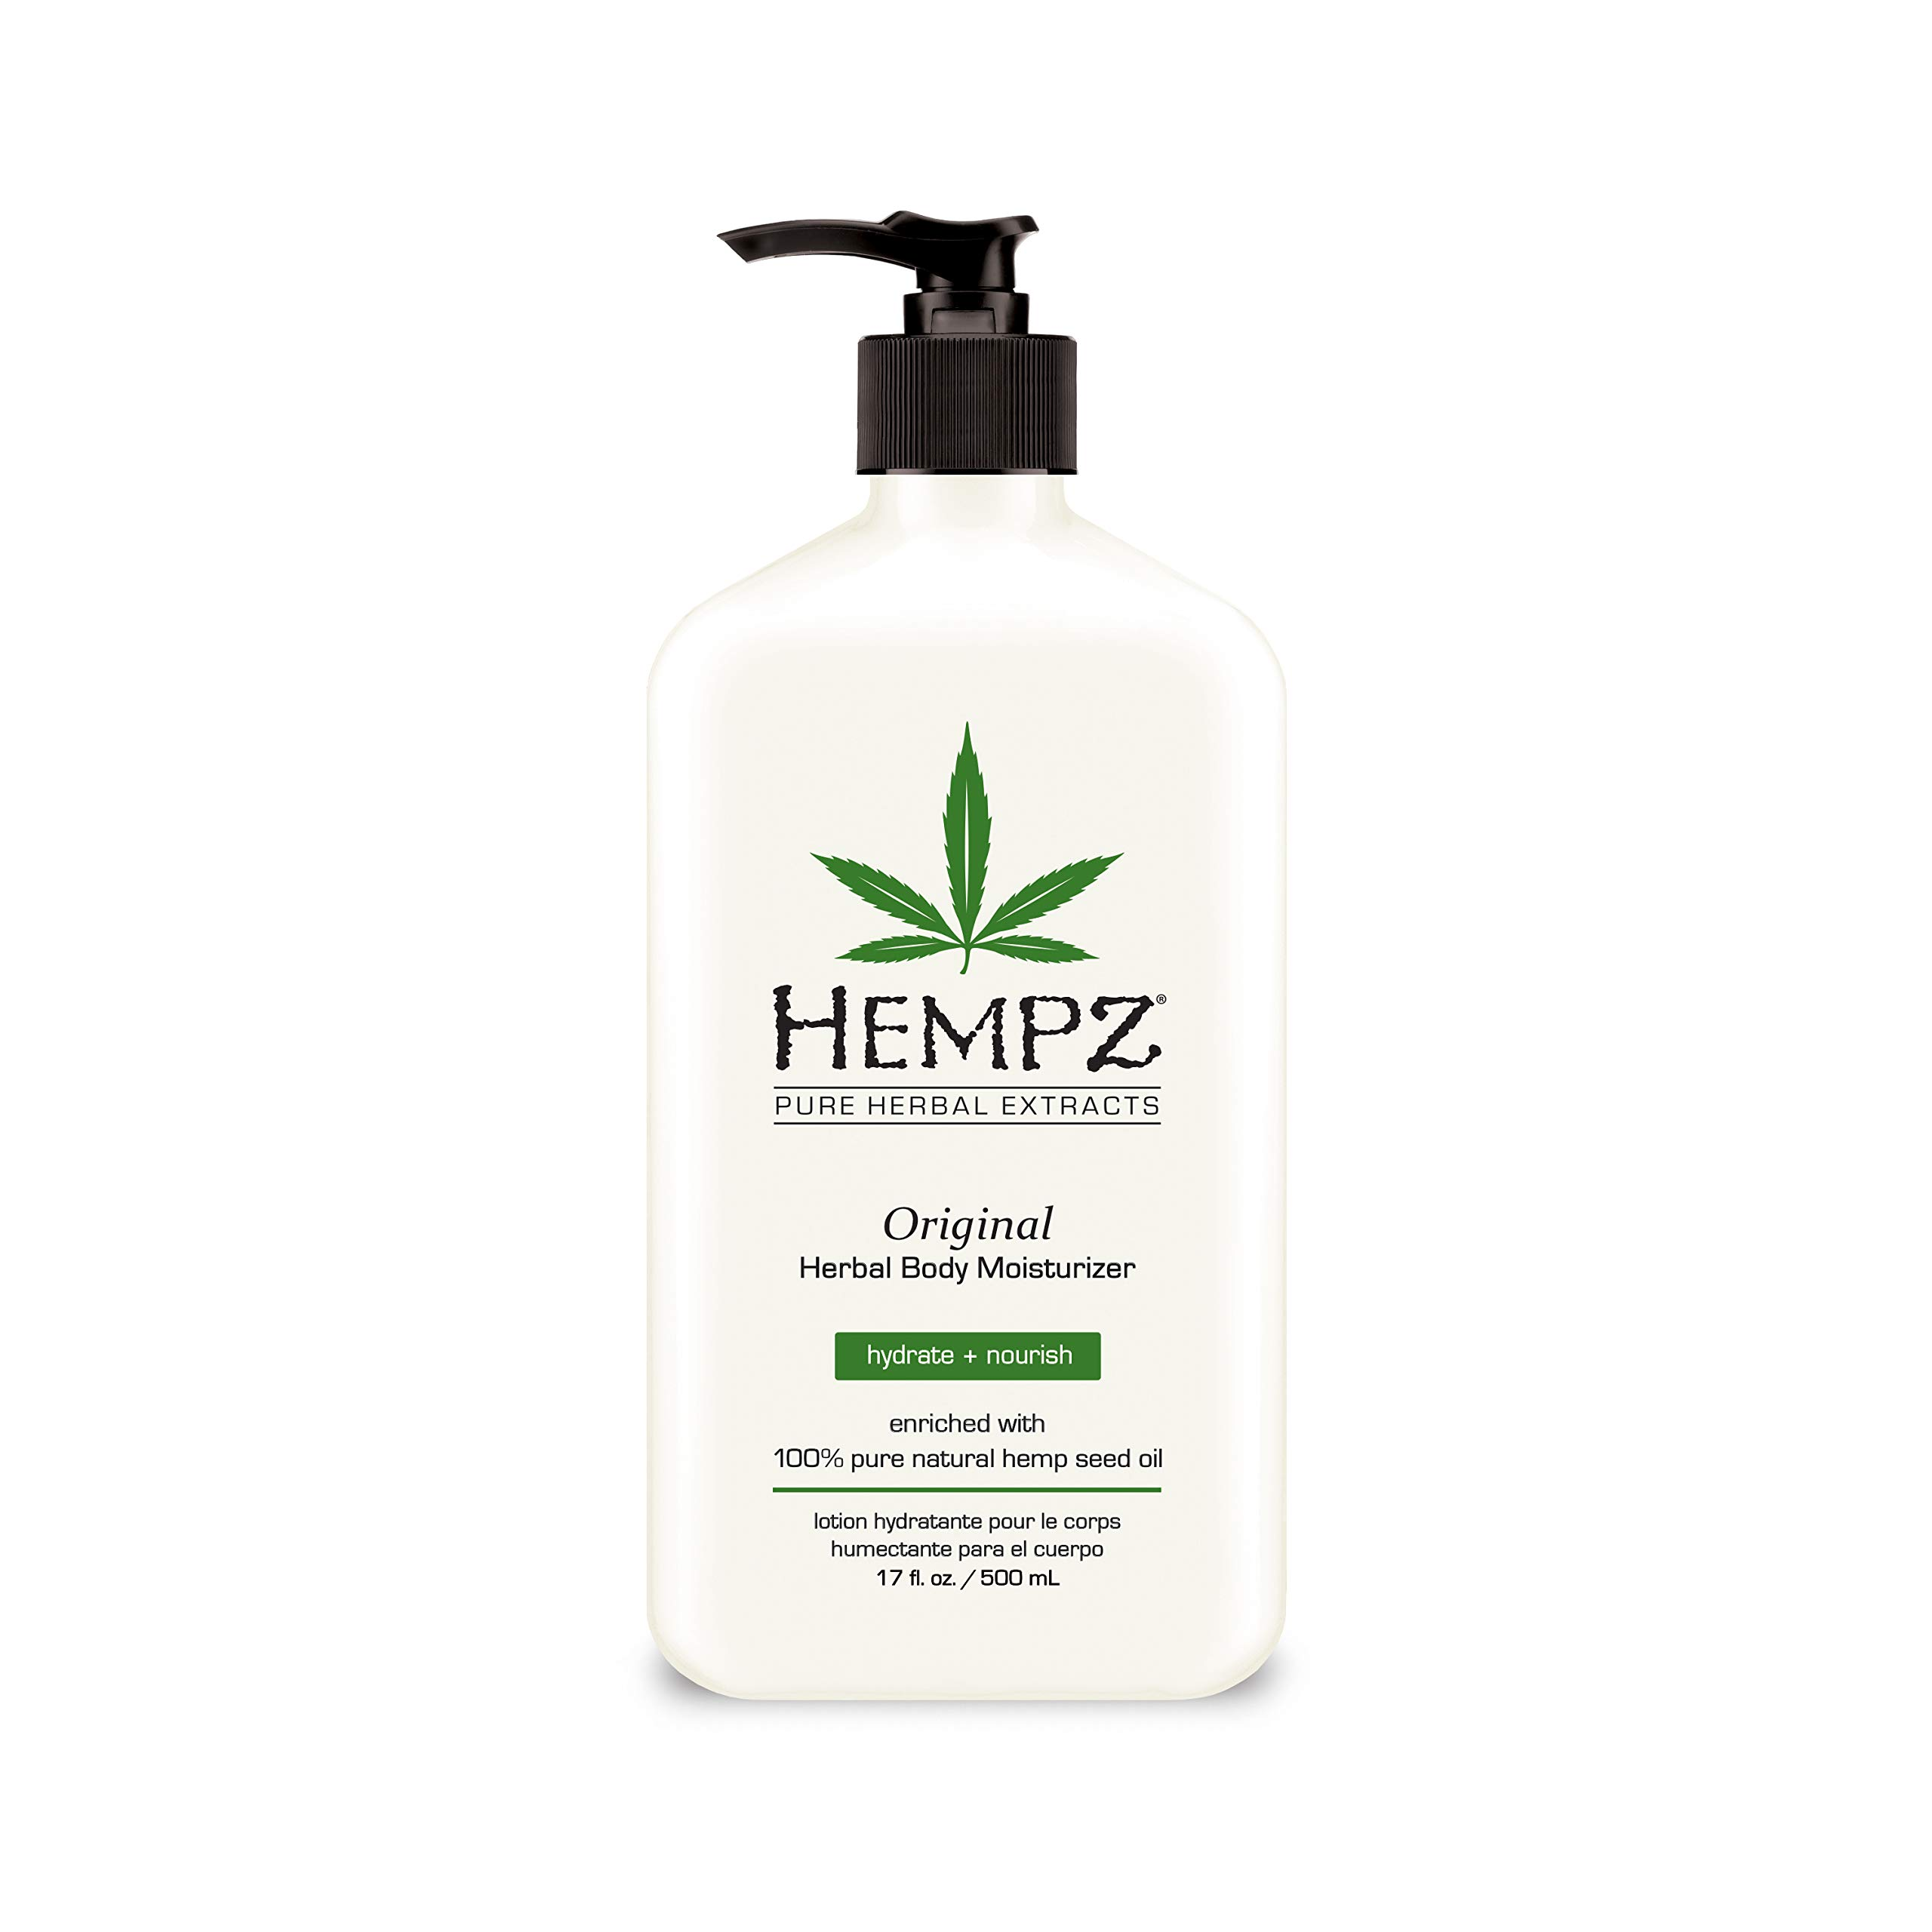 Original, Natural Hemp Seed Oil Body Moisturizer with Shea Butter and Ginseng, 17 Fl Oz – Pure Herbal Skin Lotion for Dryness – Nourishing Vegan Body Cream in Floral and Banana